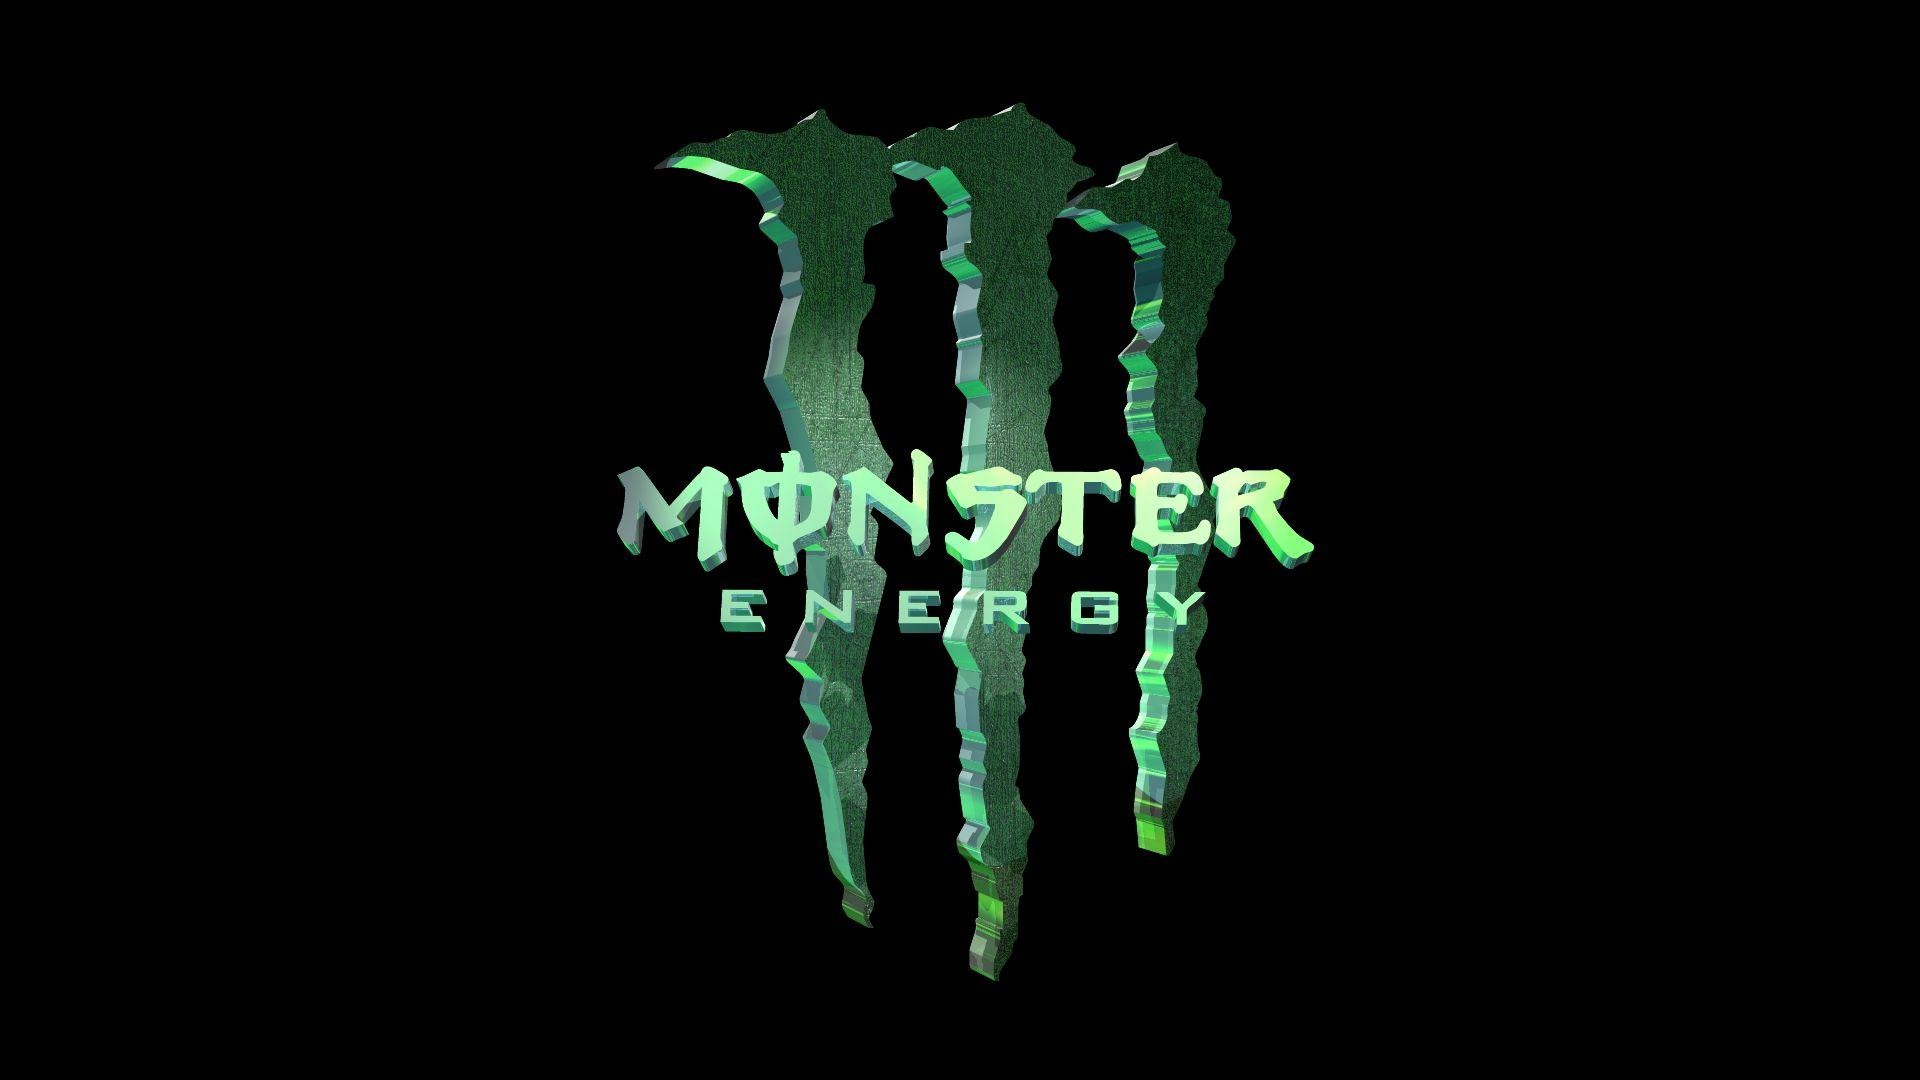 Monster Energy Wallpapers HD 2015 1920x1080